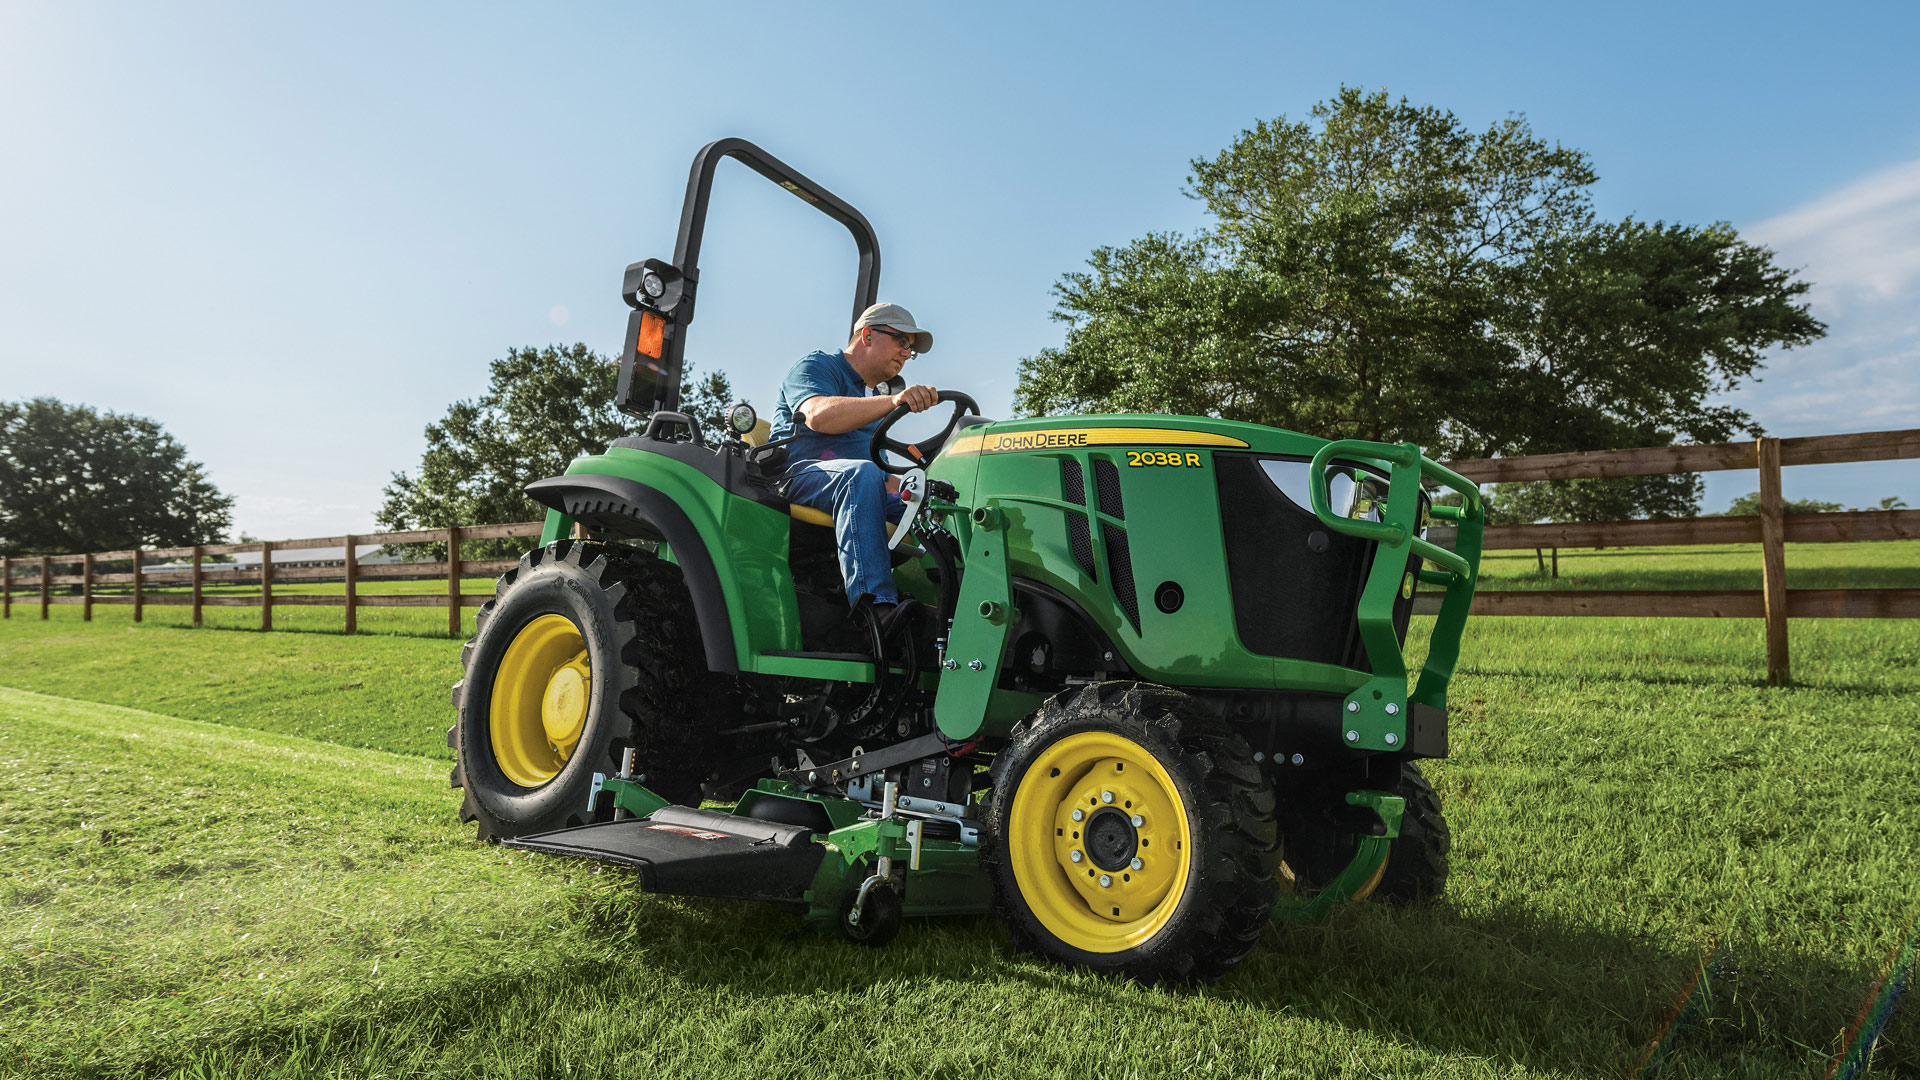 CAPABILITY REDEFINED - 2 family tractors